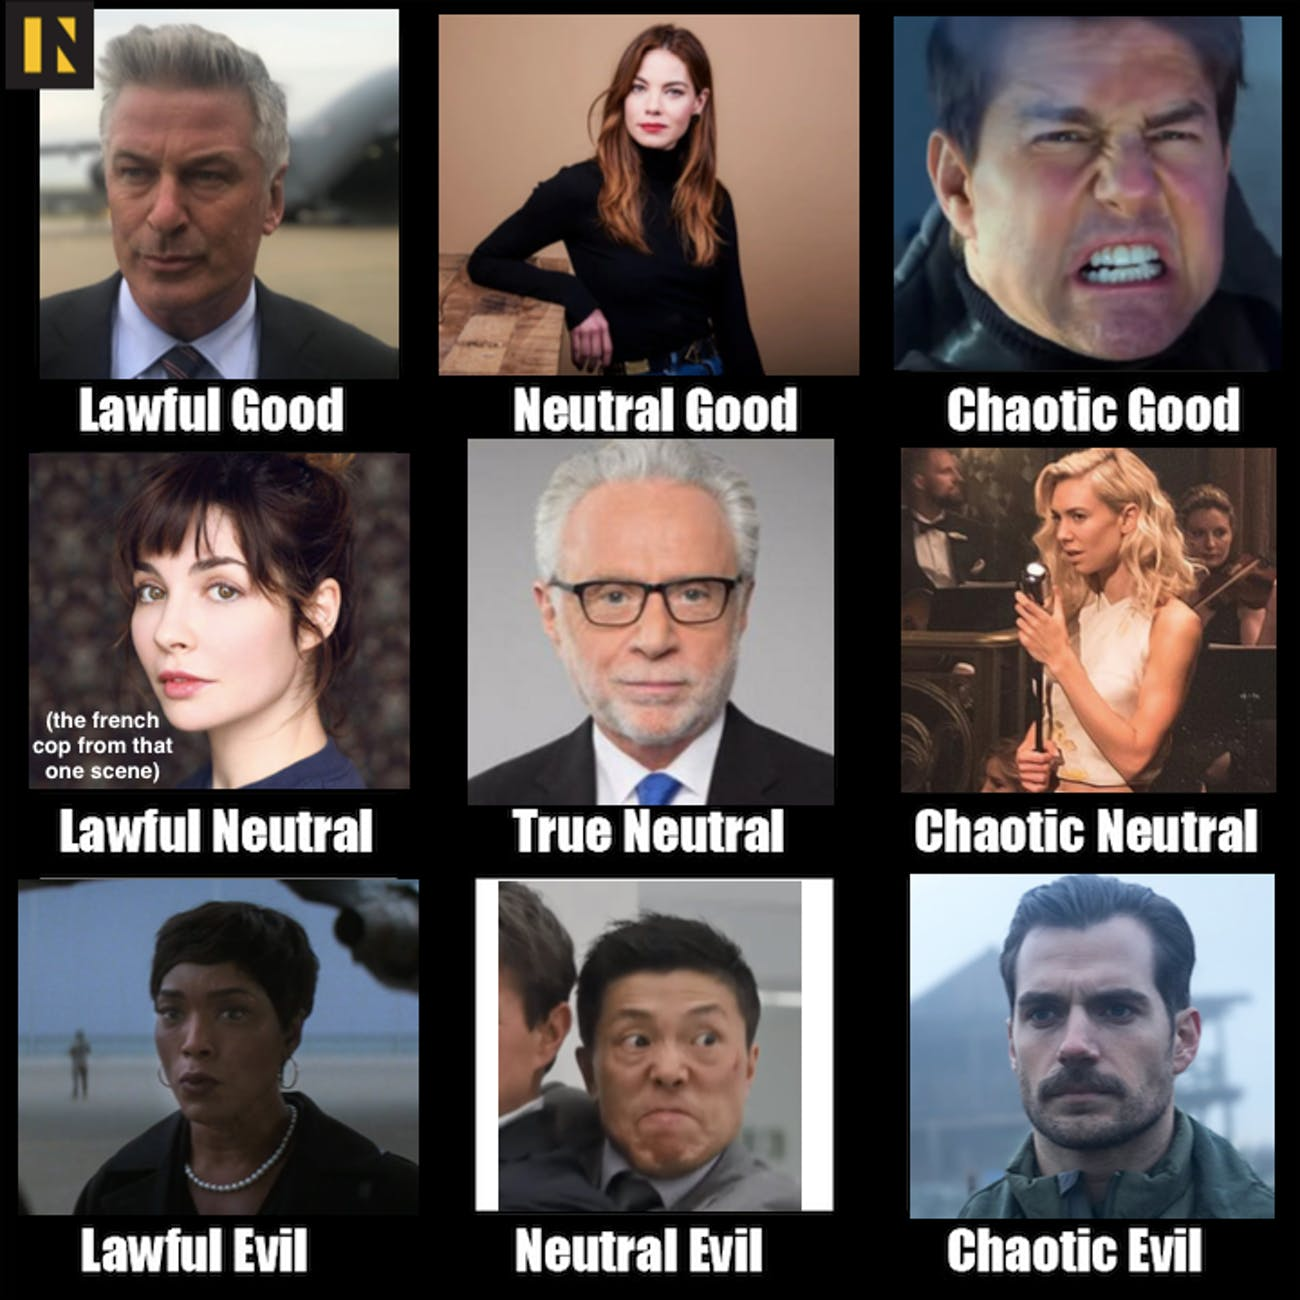 Mission Impossible Fallout' Spoilers, Ending: Who's Good and